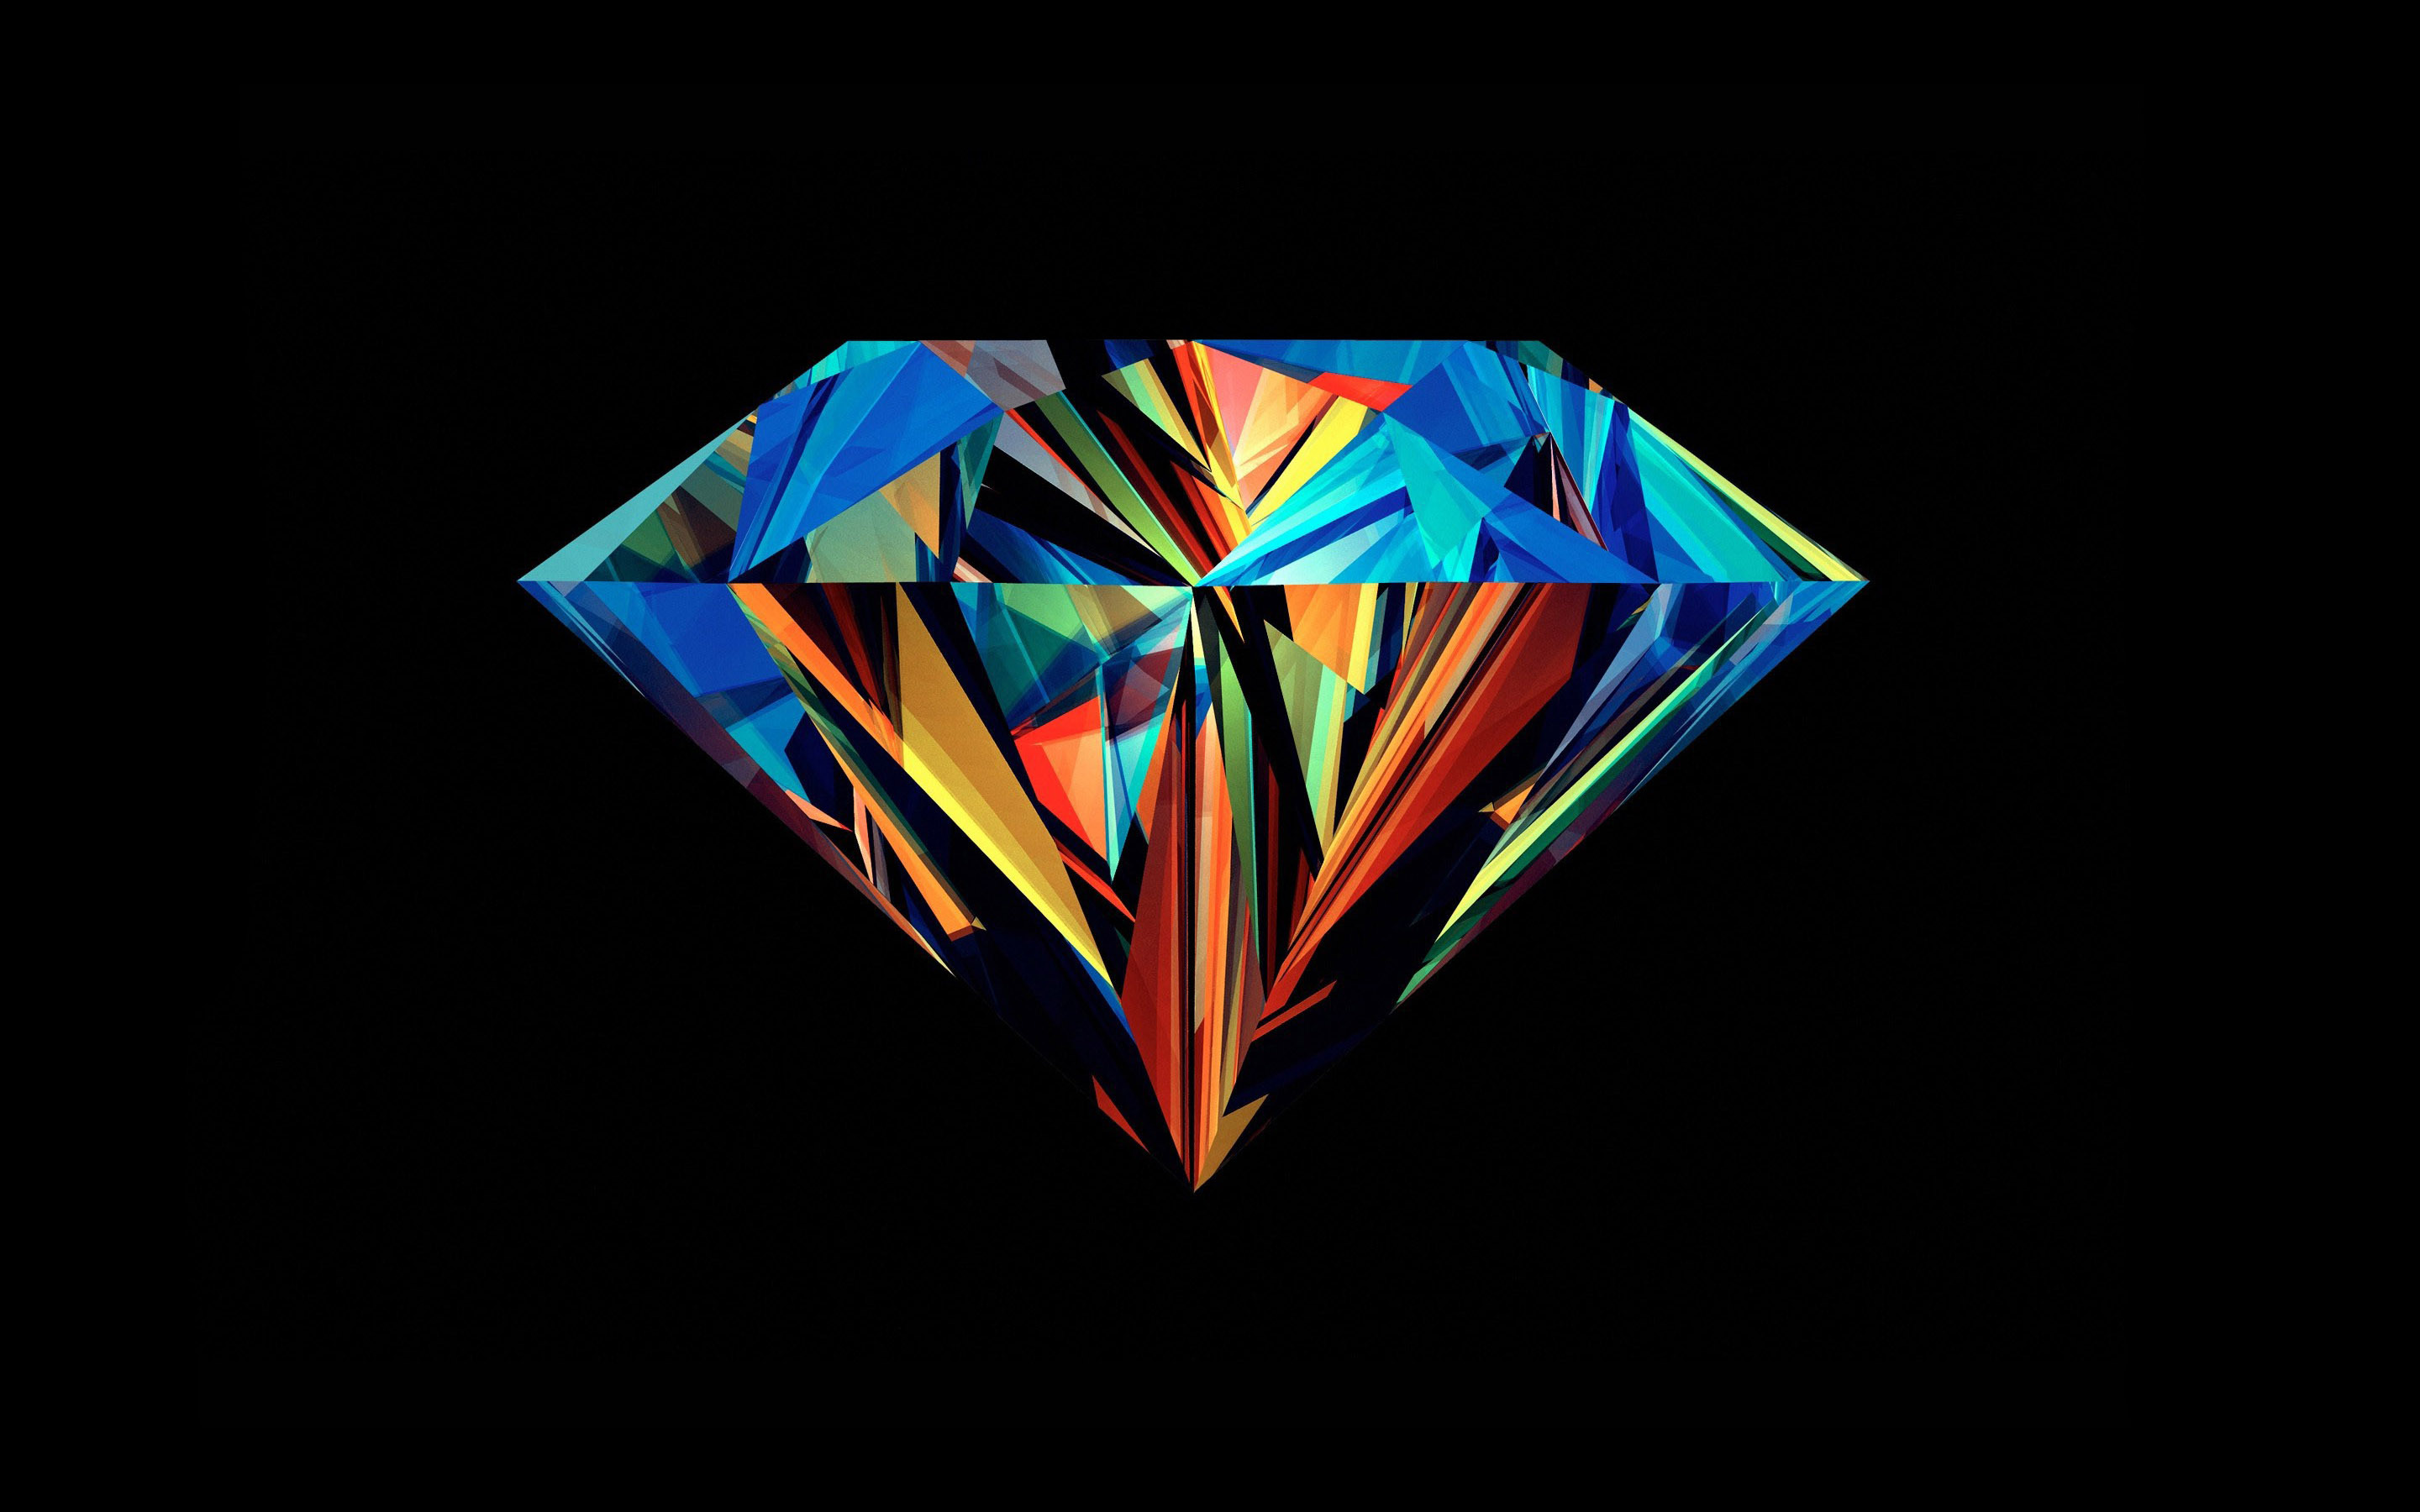 Wallpaper of Diamonds - WallpaperSafari